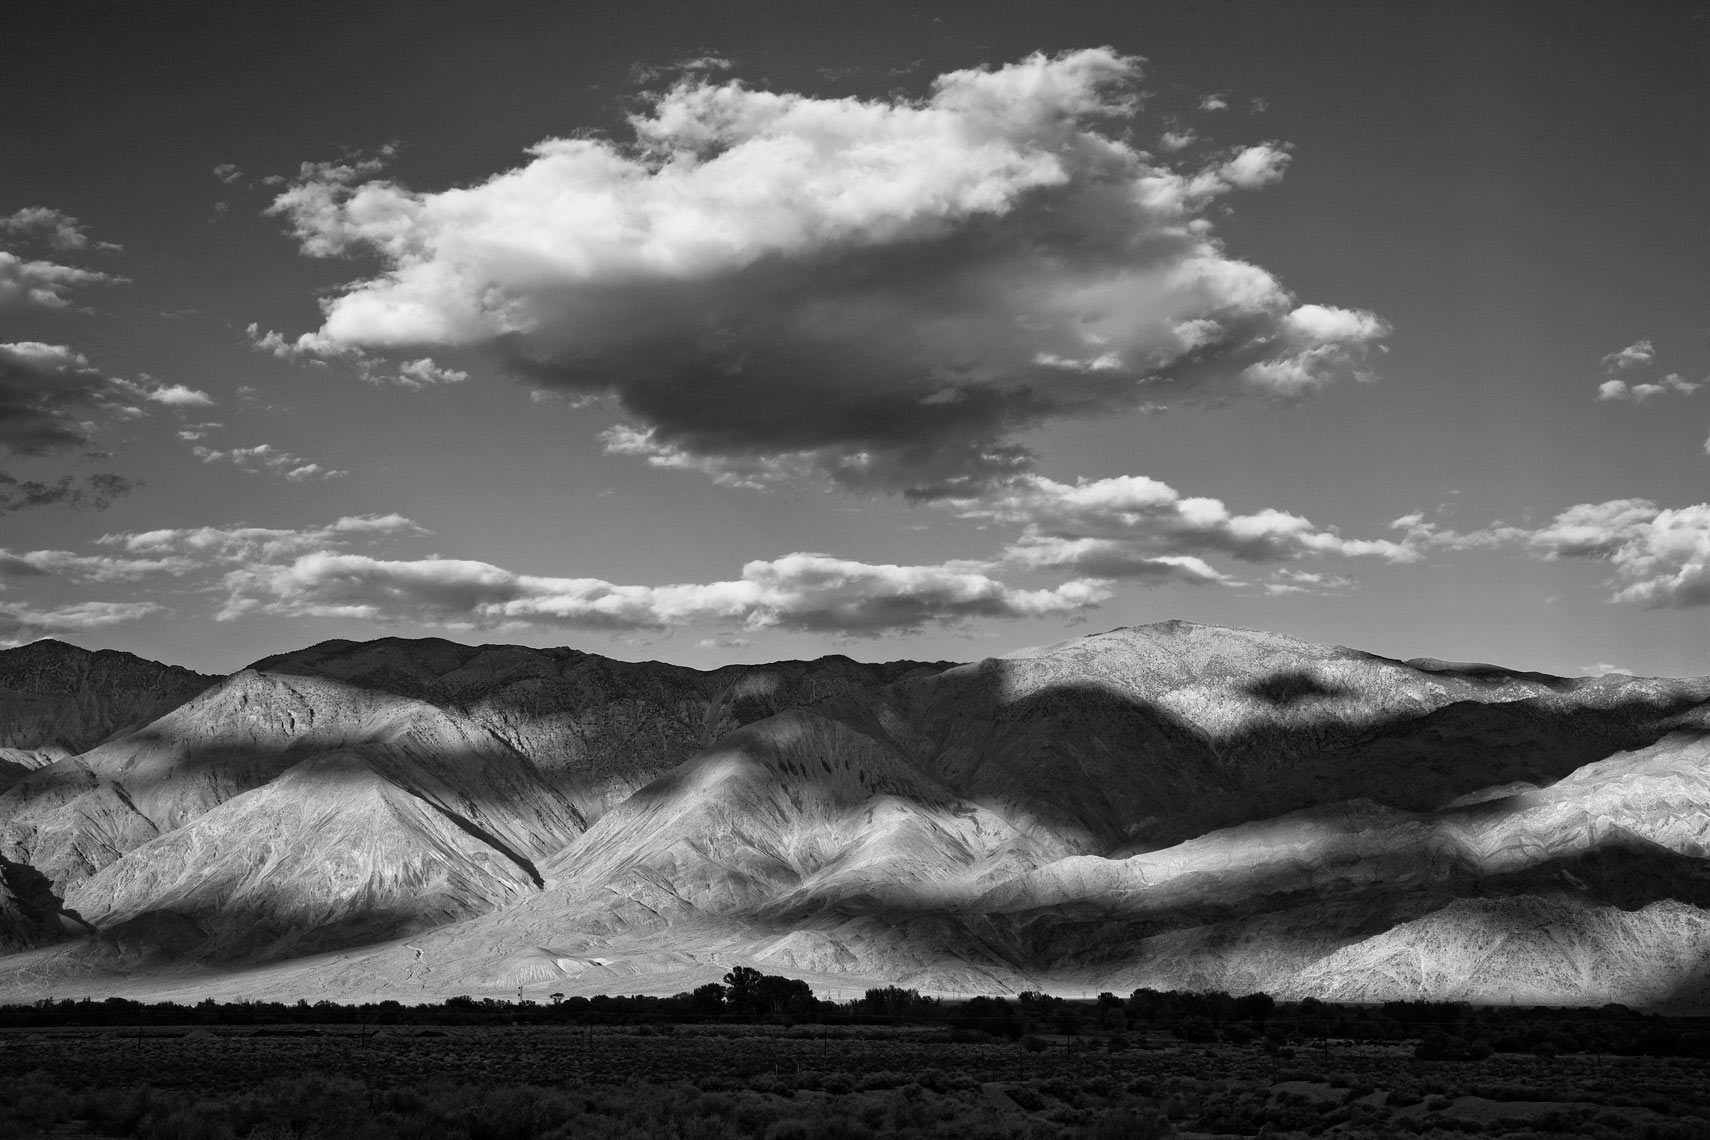 Clouds Over Lone Pine Mountains - Black & White